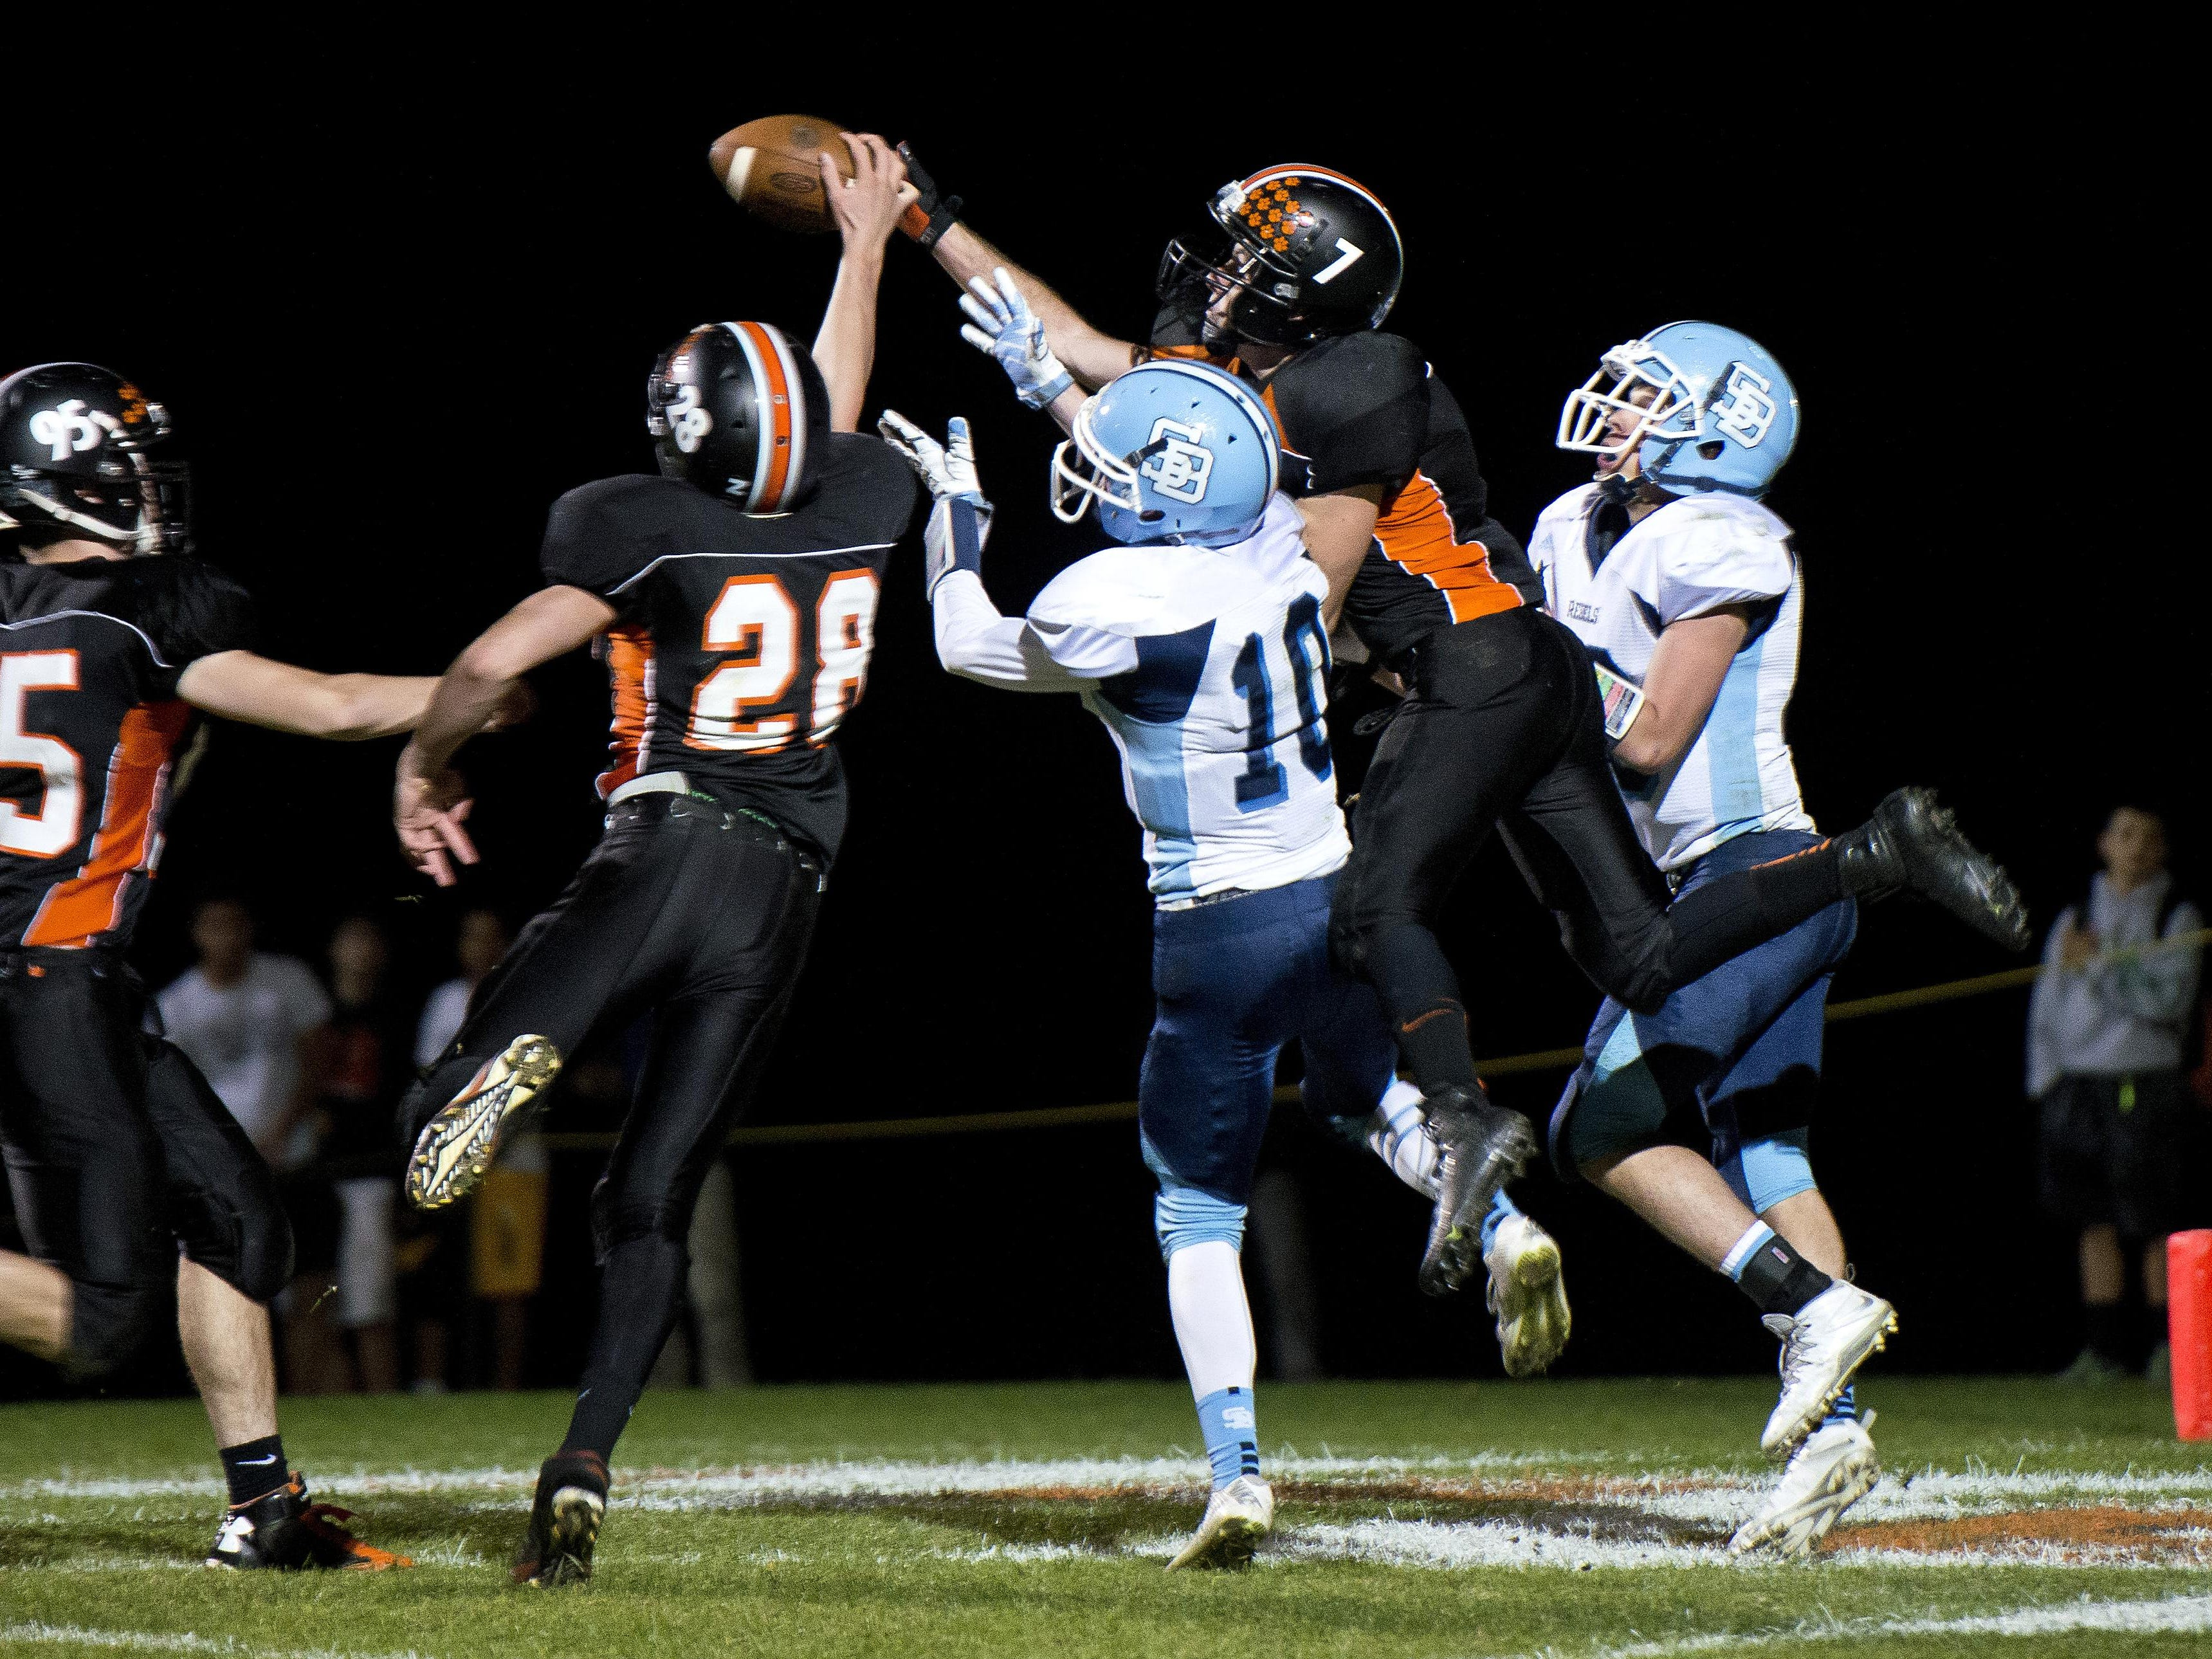 Middlebury's Oakley Gordon (7) and Jerry Niemo (28) break up a South Burlington pass in the end zone during Friday night's football game in Middlebury.